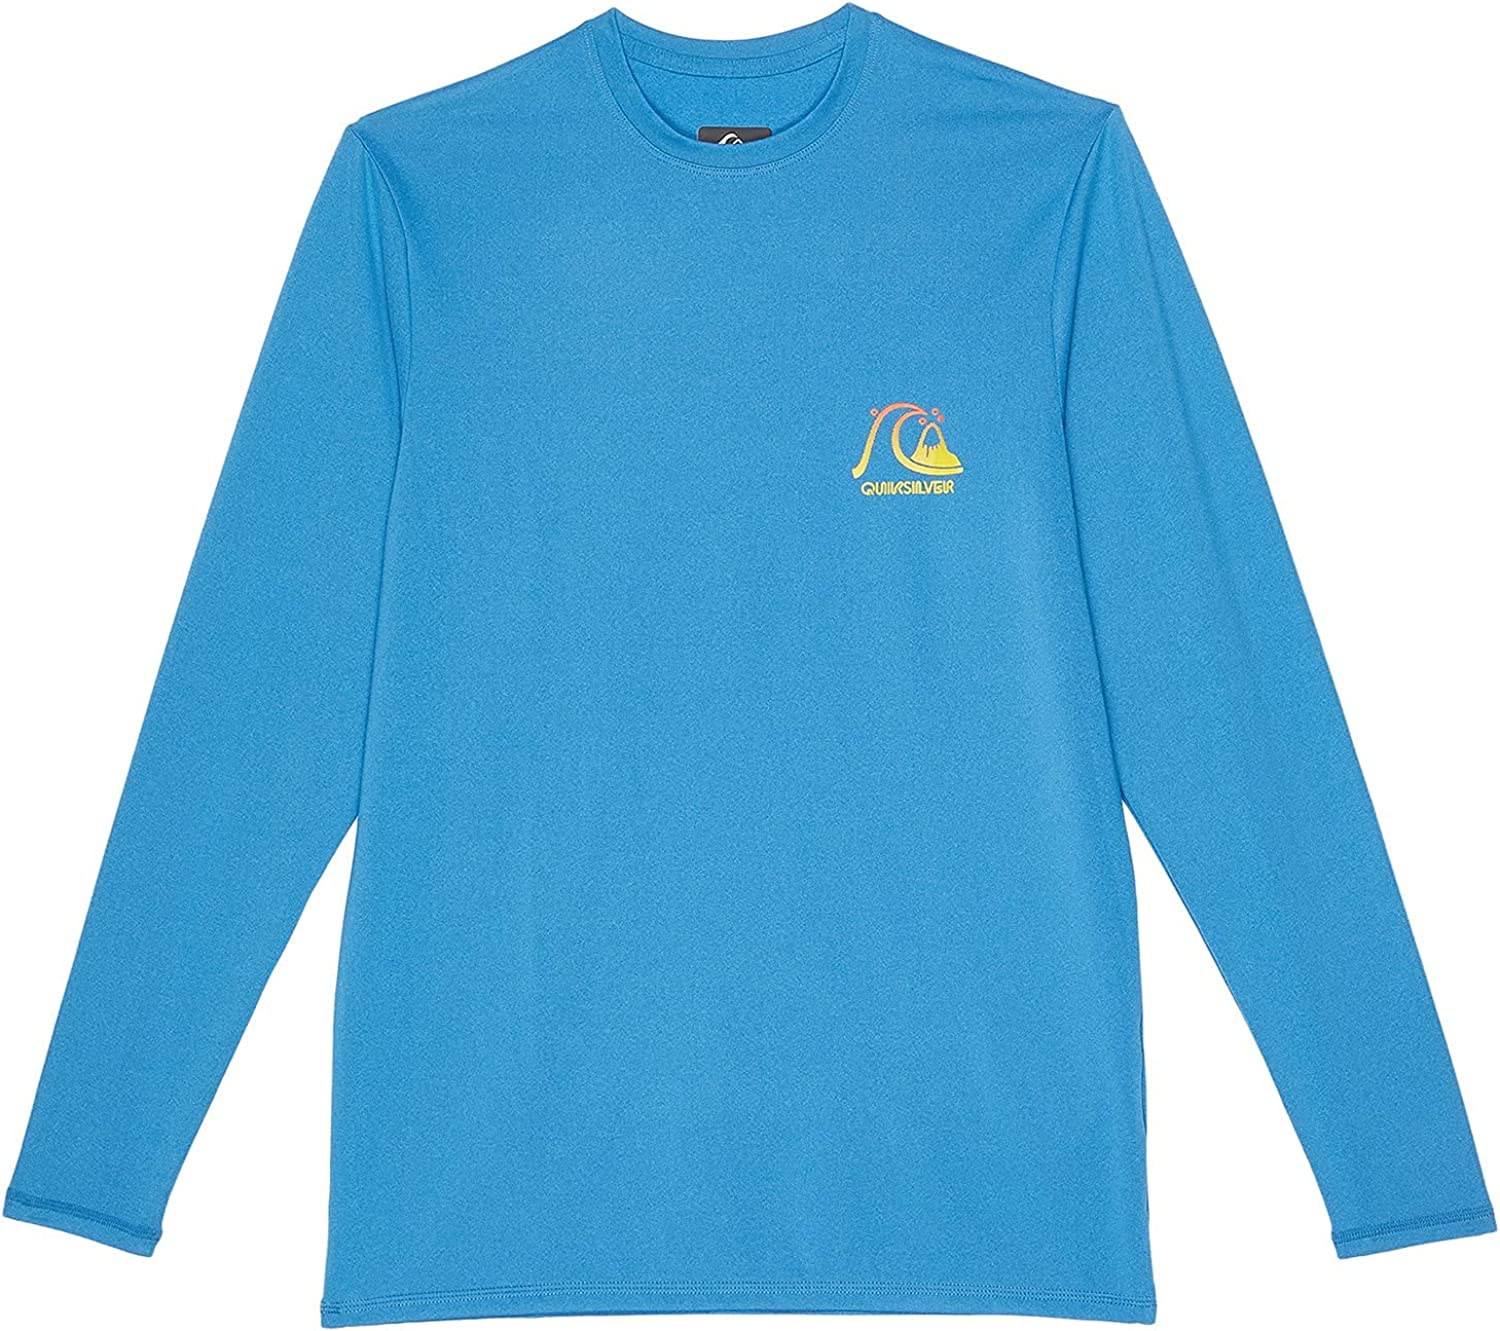 Quiksilver Boys' Heritage Heather Ls Youth Long Rashguard Super beauty product restock quality In a popularity top Sleeve